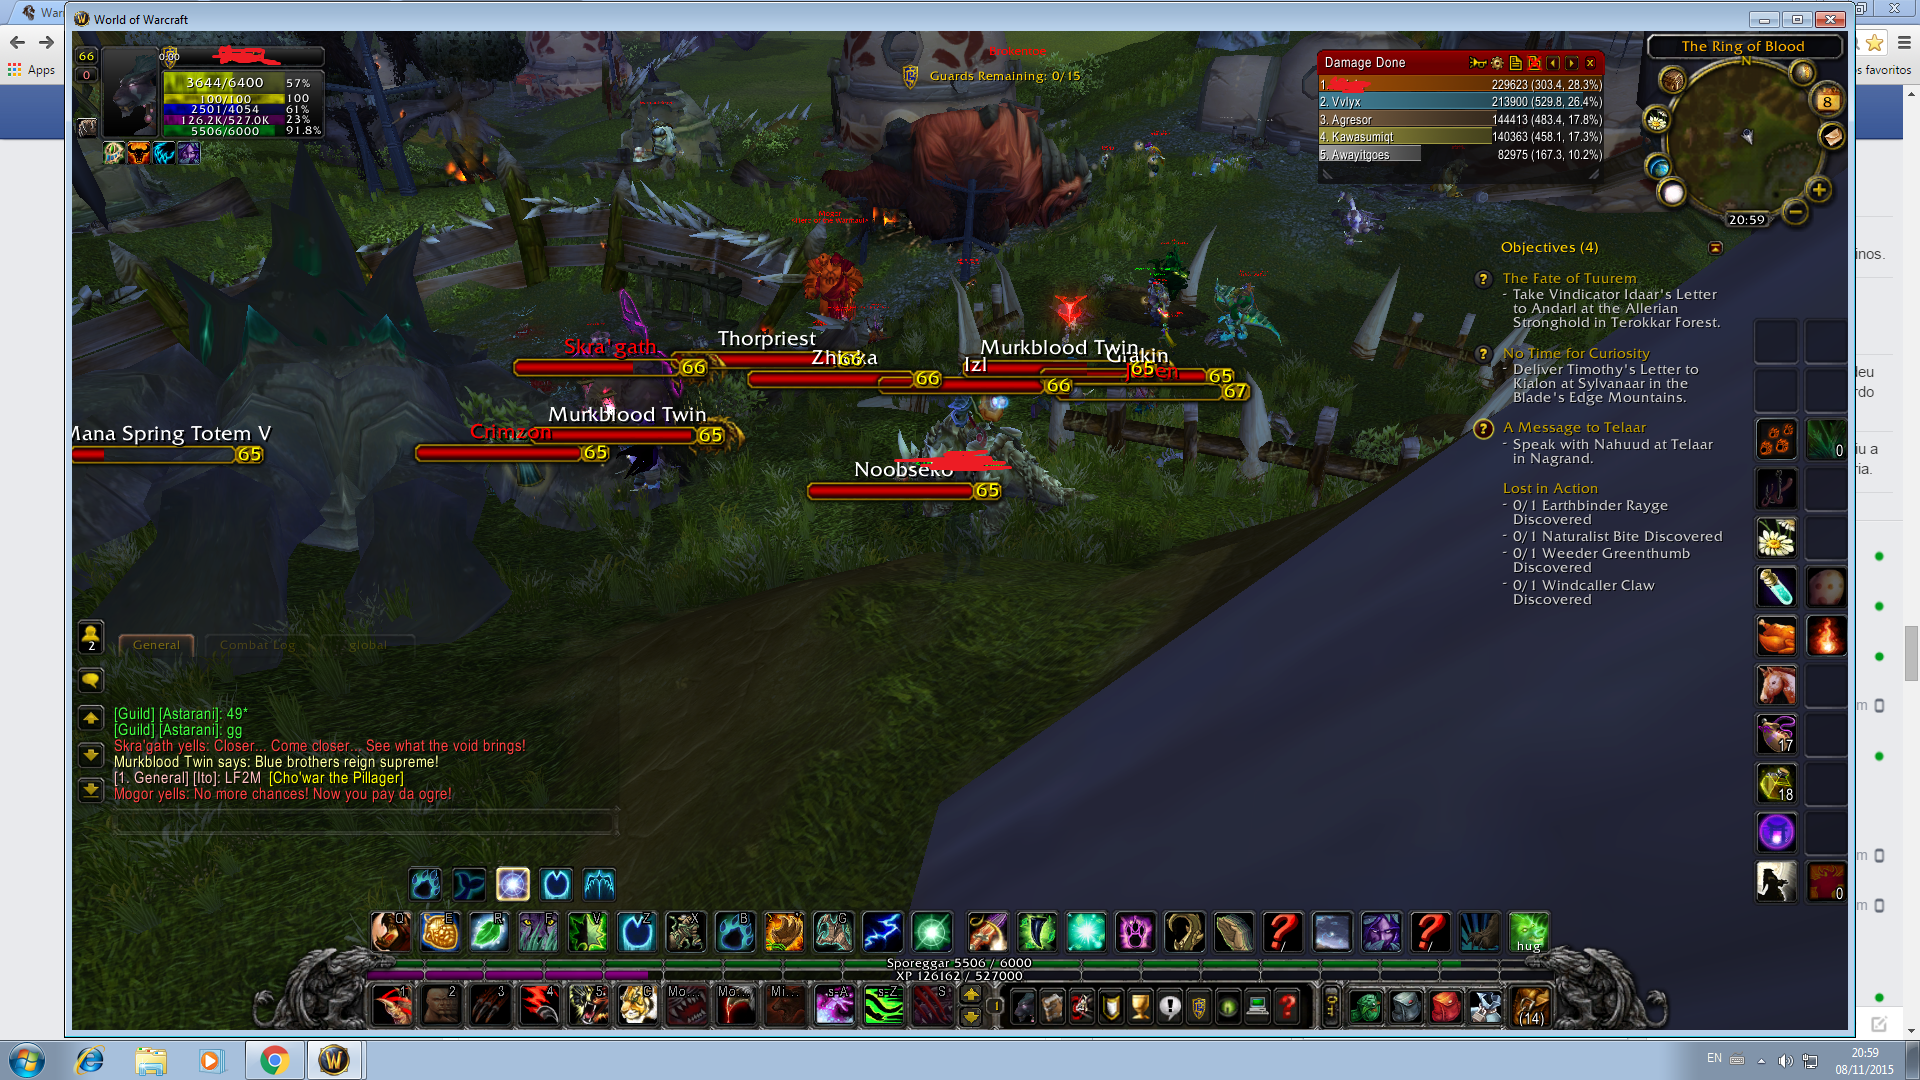 Trying to do The ring of blood aka nagrand arena quest but